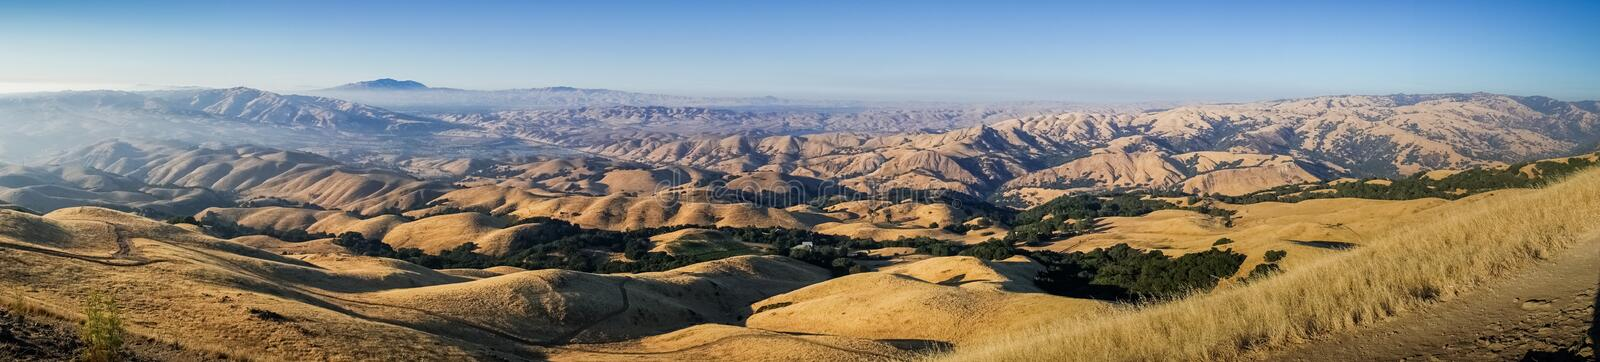 Panoramic view towards Mount Diablo at sunset from the summit of Mission Peak stock images